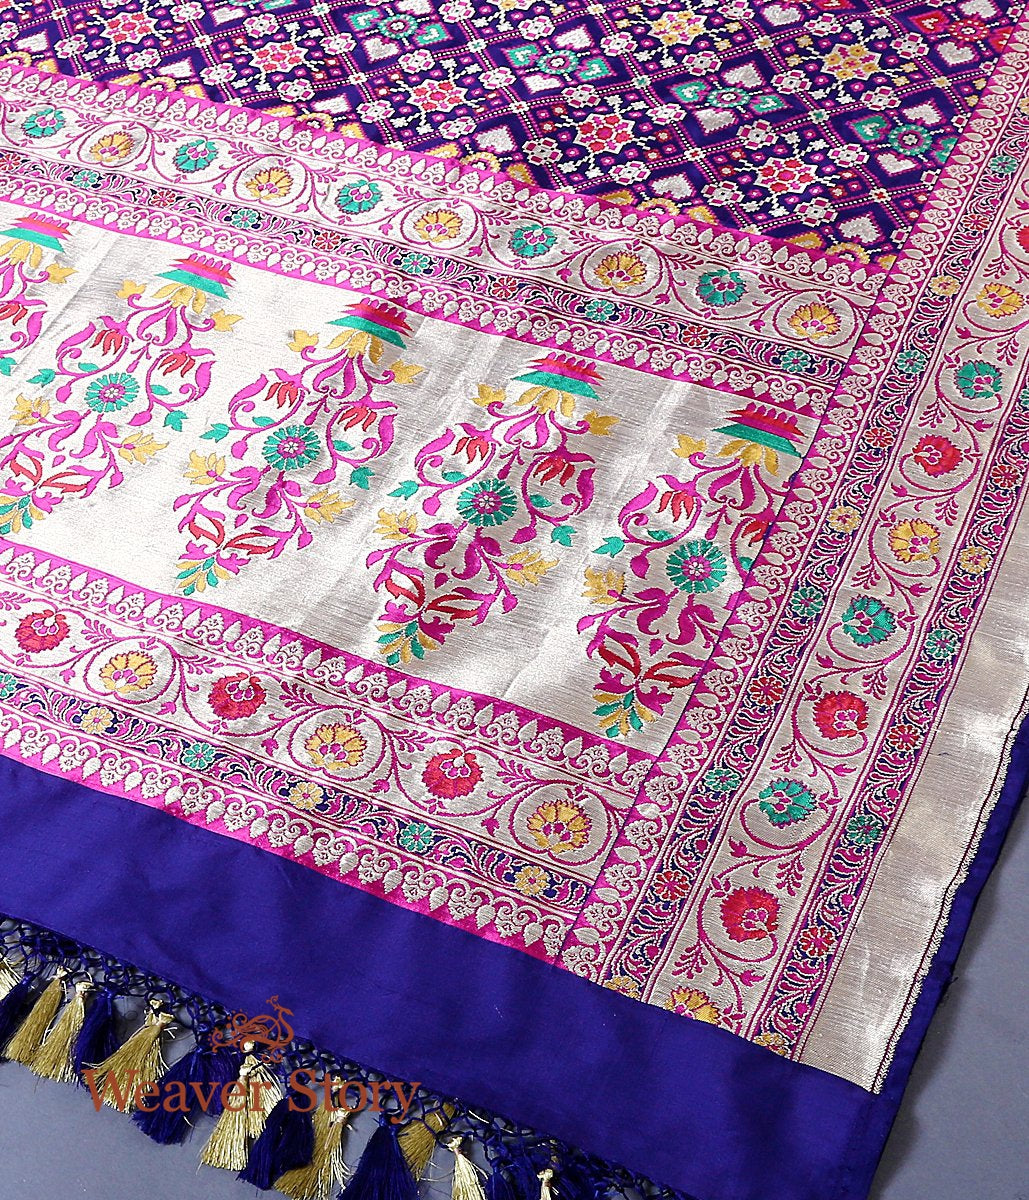 Handwoven banarasi patola dupatta in blue with meenakari